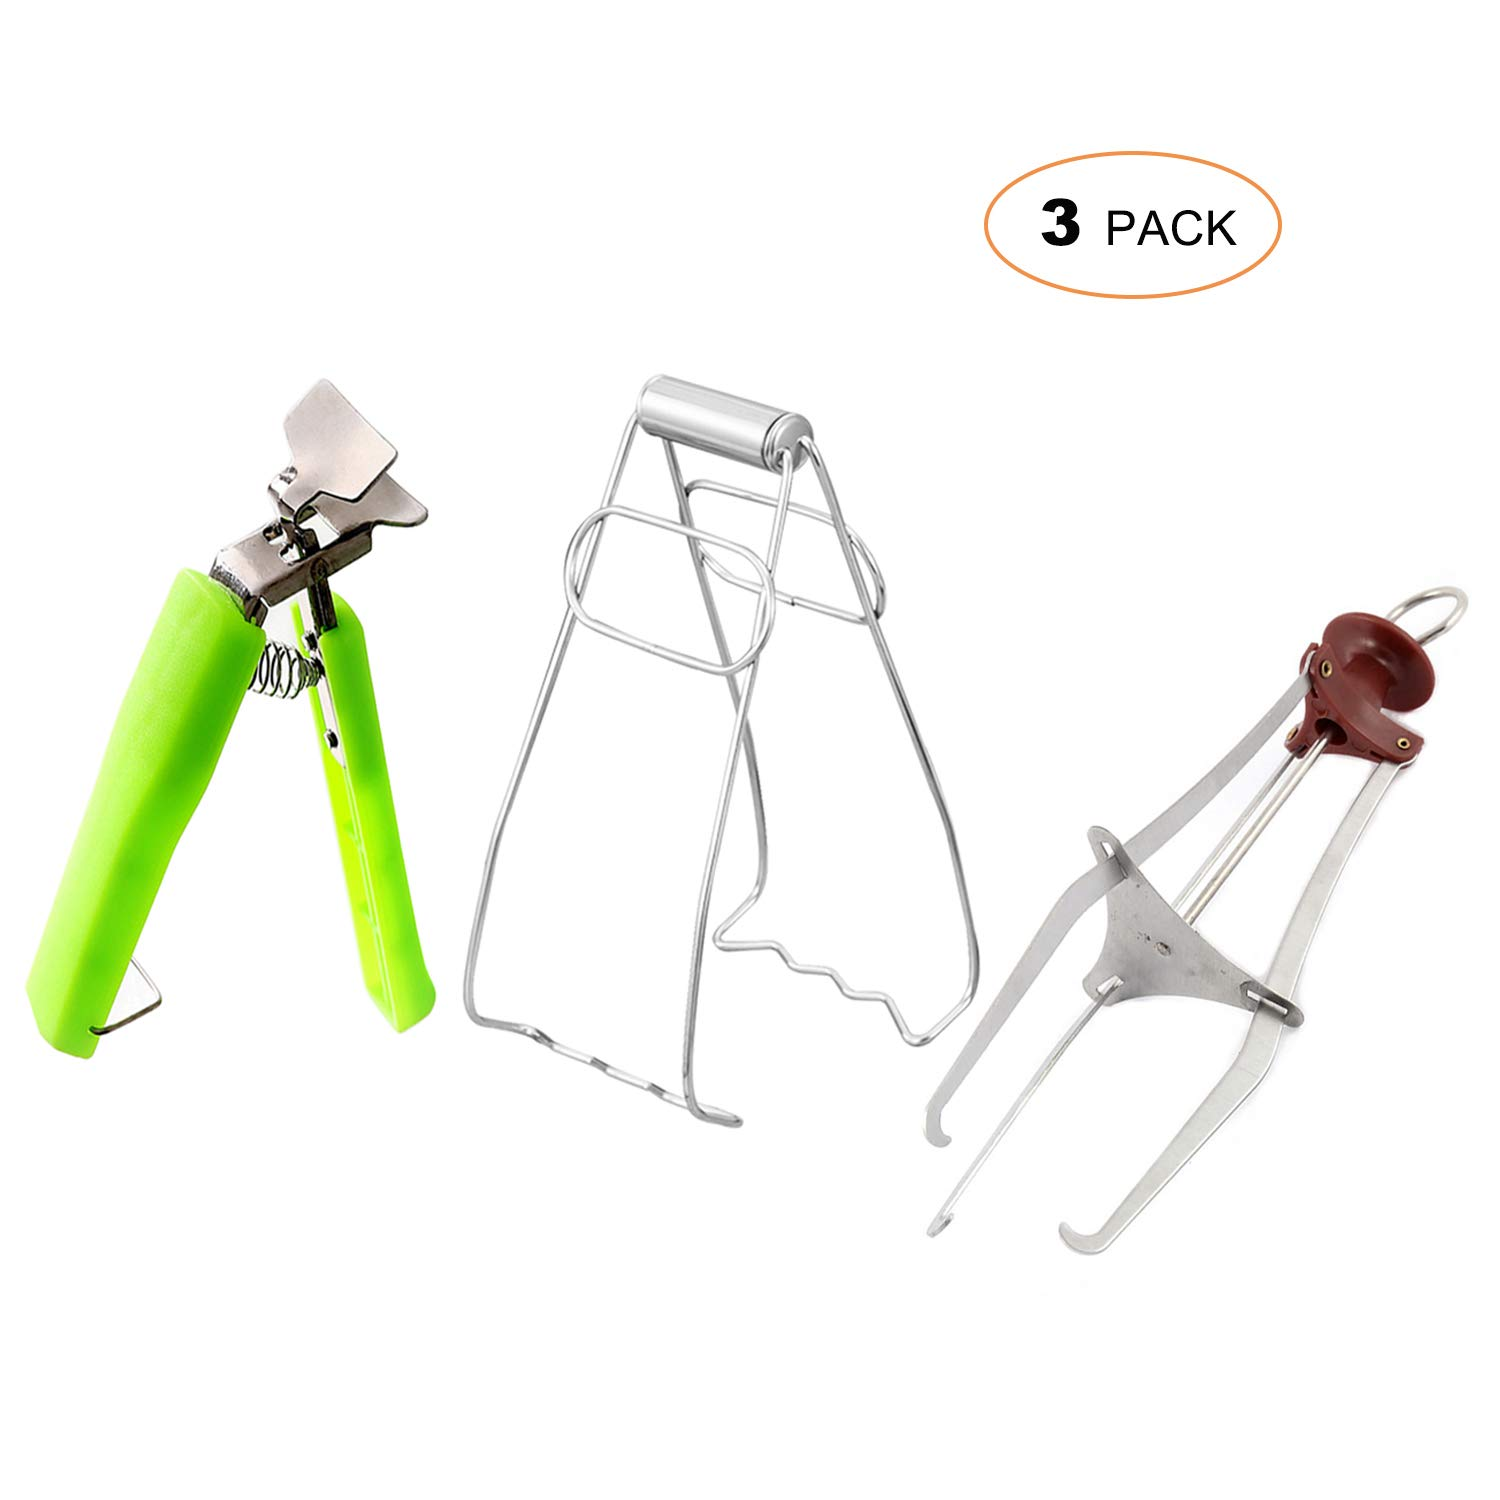 3 Pack Dish Bowl Clip Gripper, Kitchen Stainless Steel Folding Hot Dish Plate Holder, Lifter Gripper, and Three Feet Clip Retrieve Tong from Microwave Oven